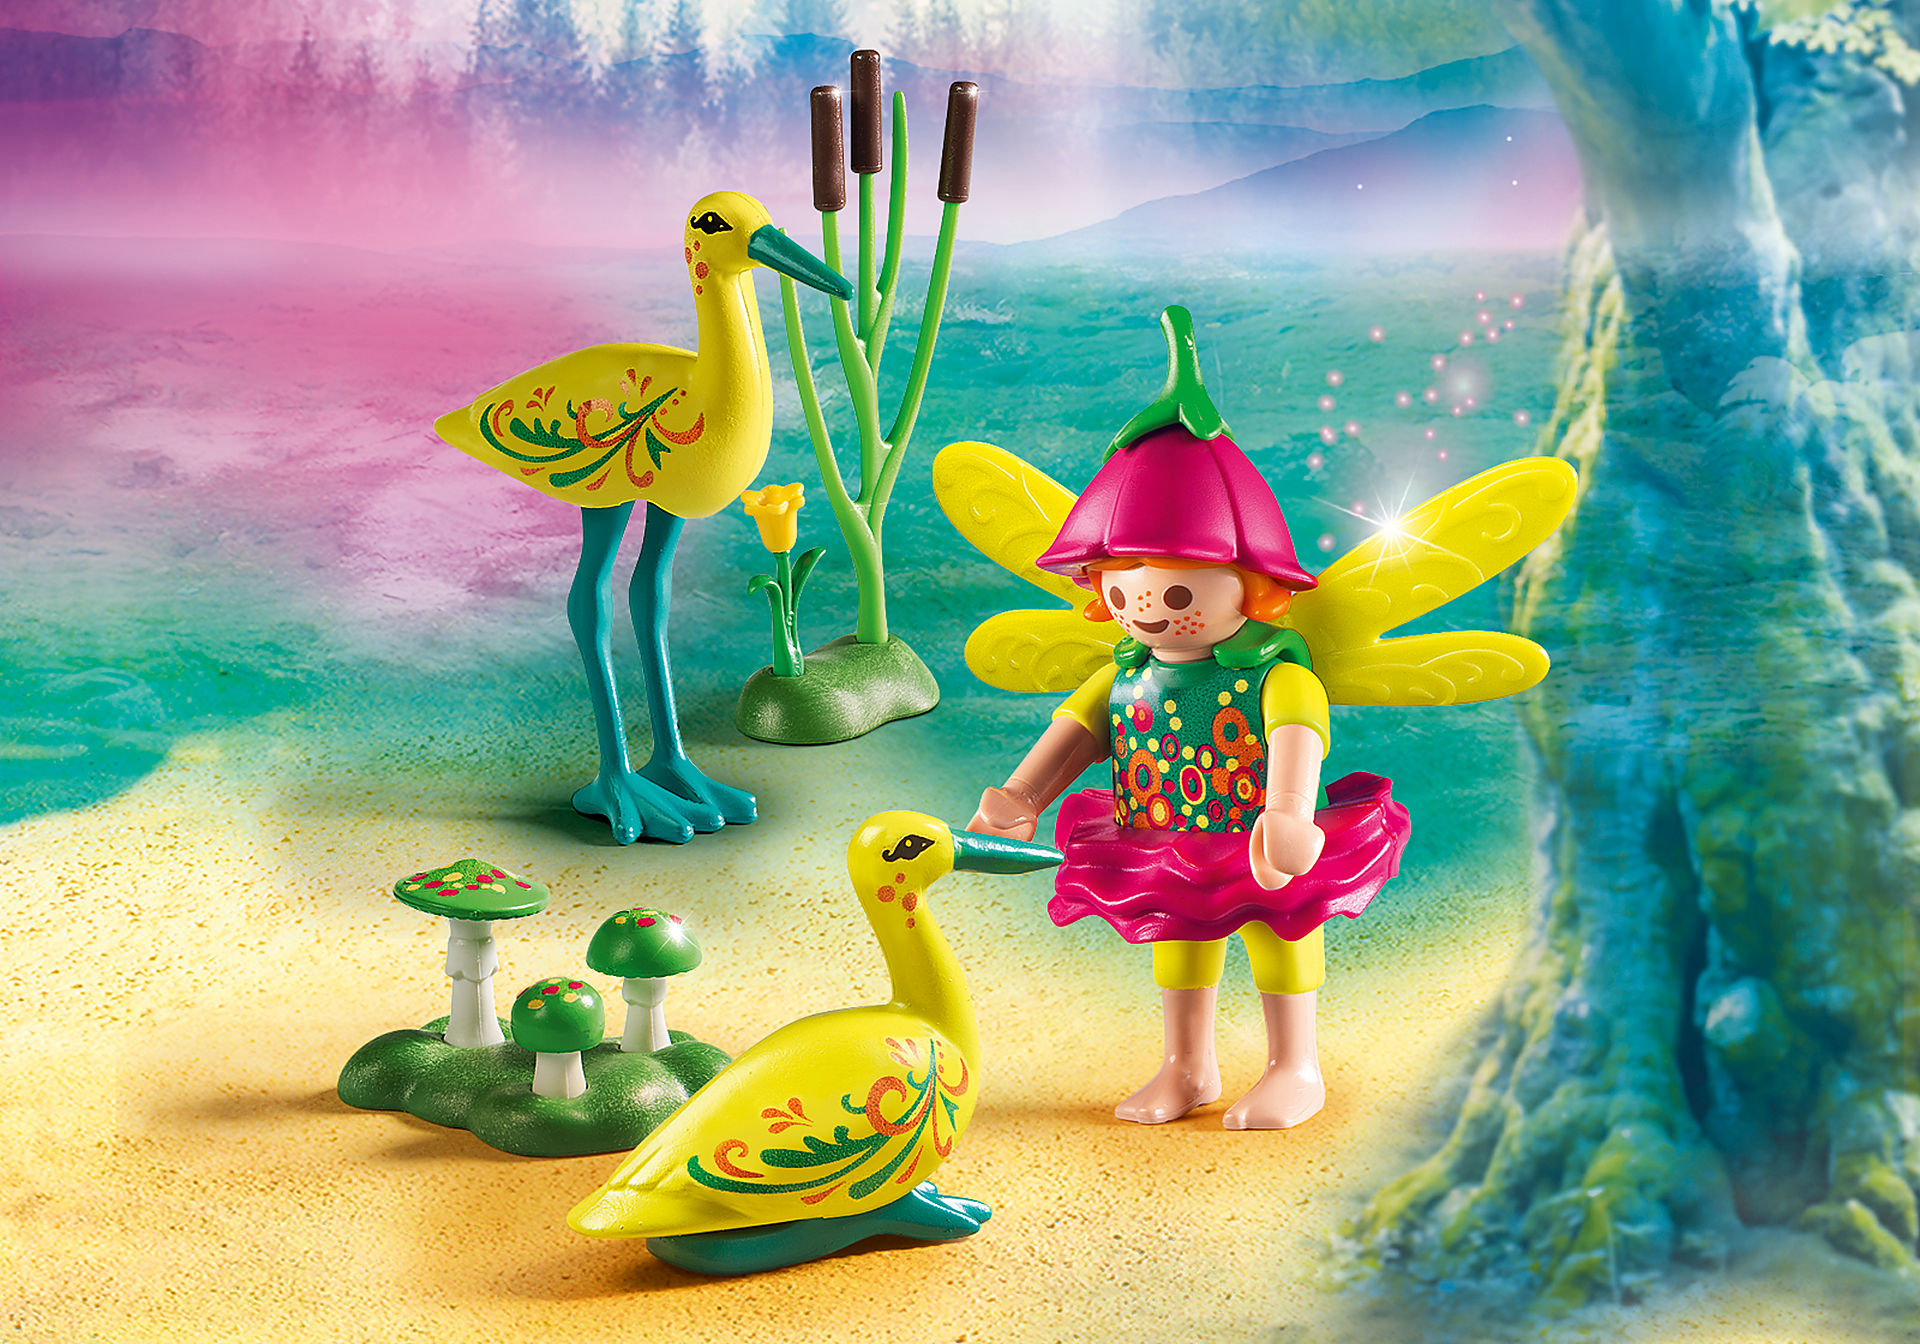 http://media.playmobil.com/i/playmobil/9138_product_detail/Fairy Girl with Storks